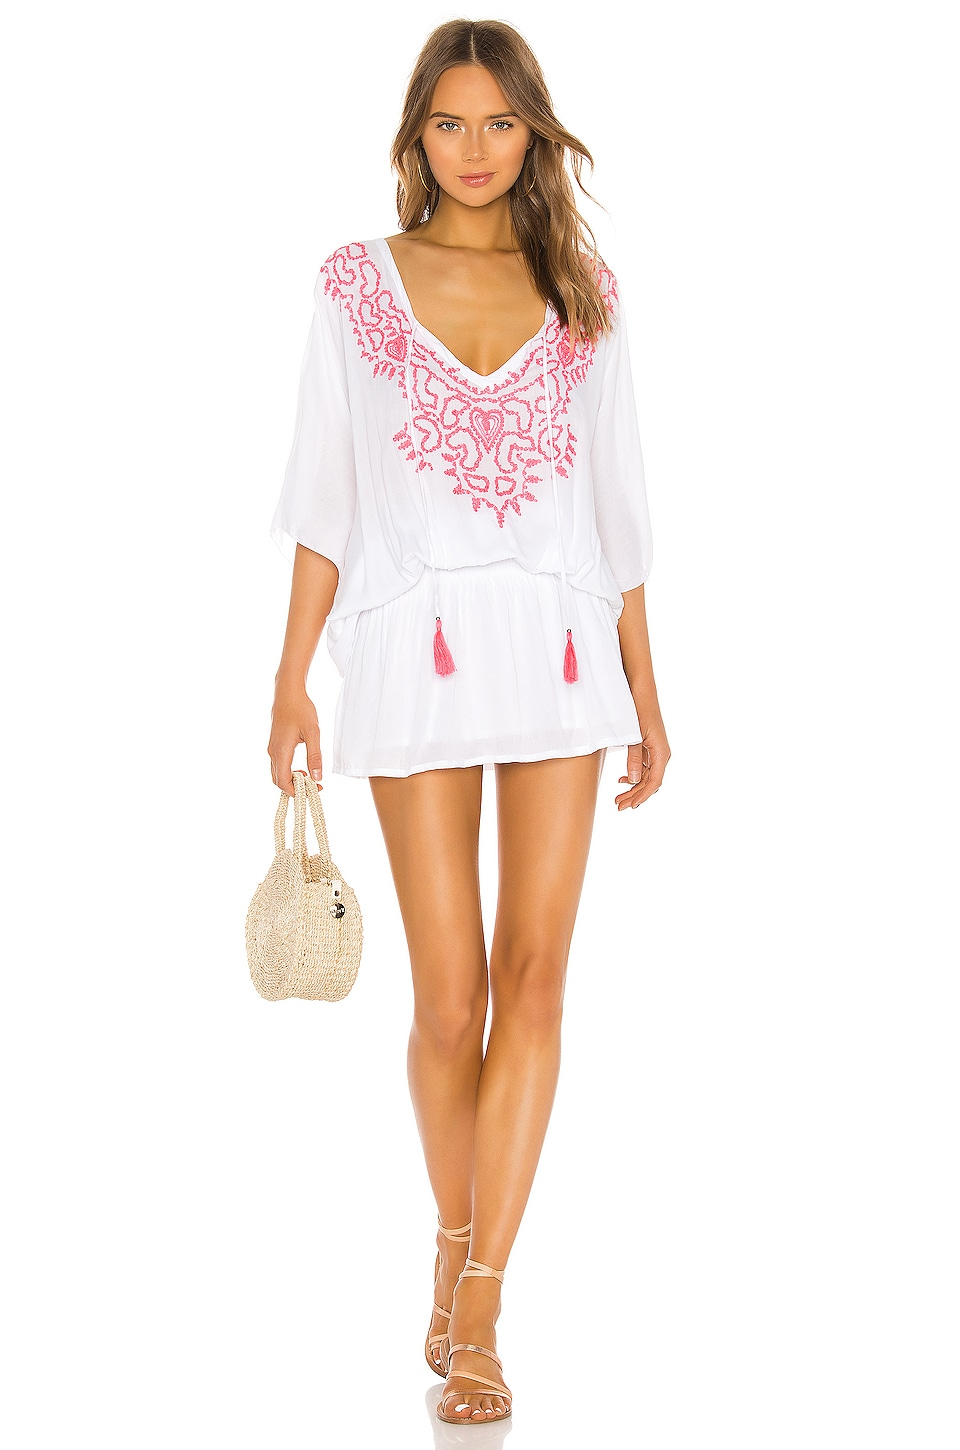 Tiare Hawaii ROBE COURTE MARGARITA